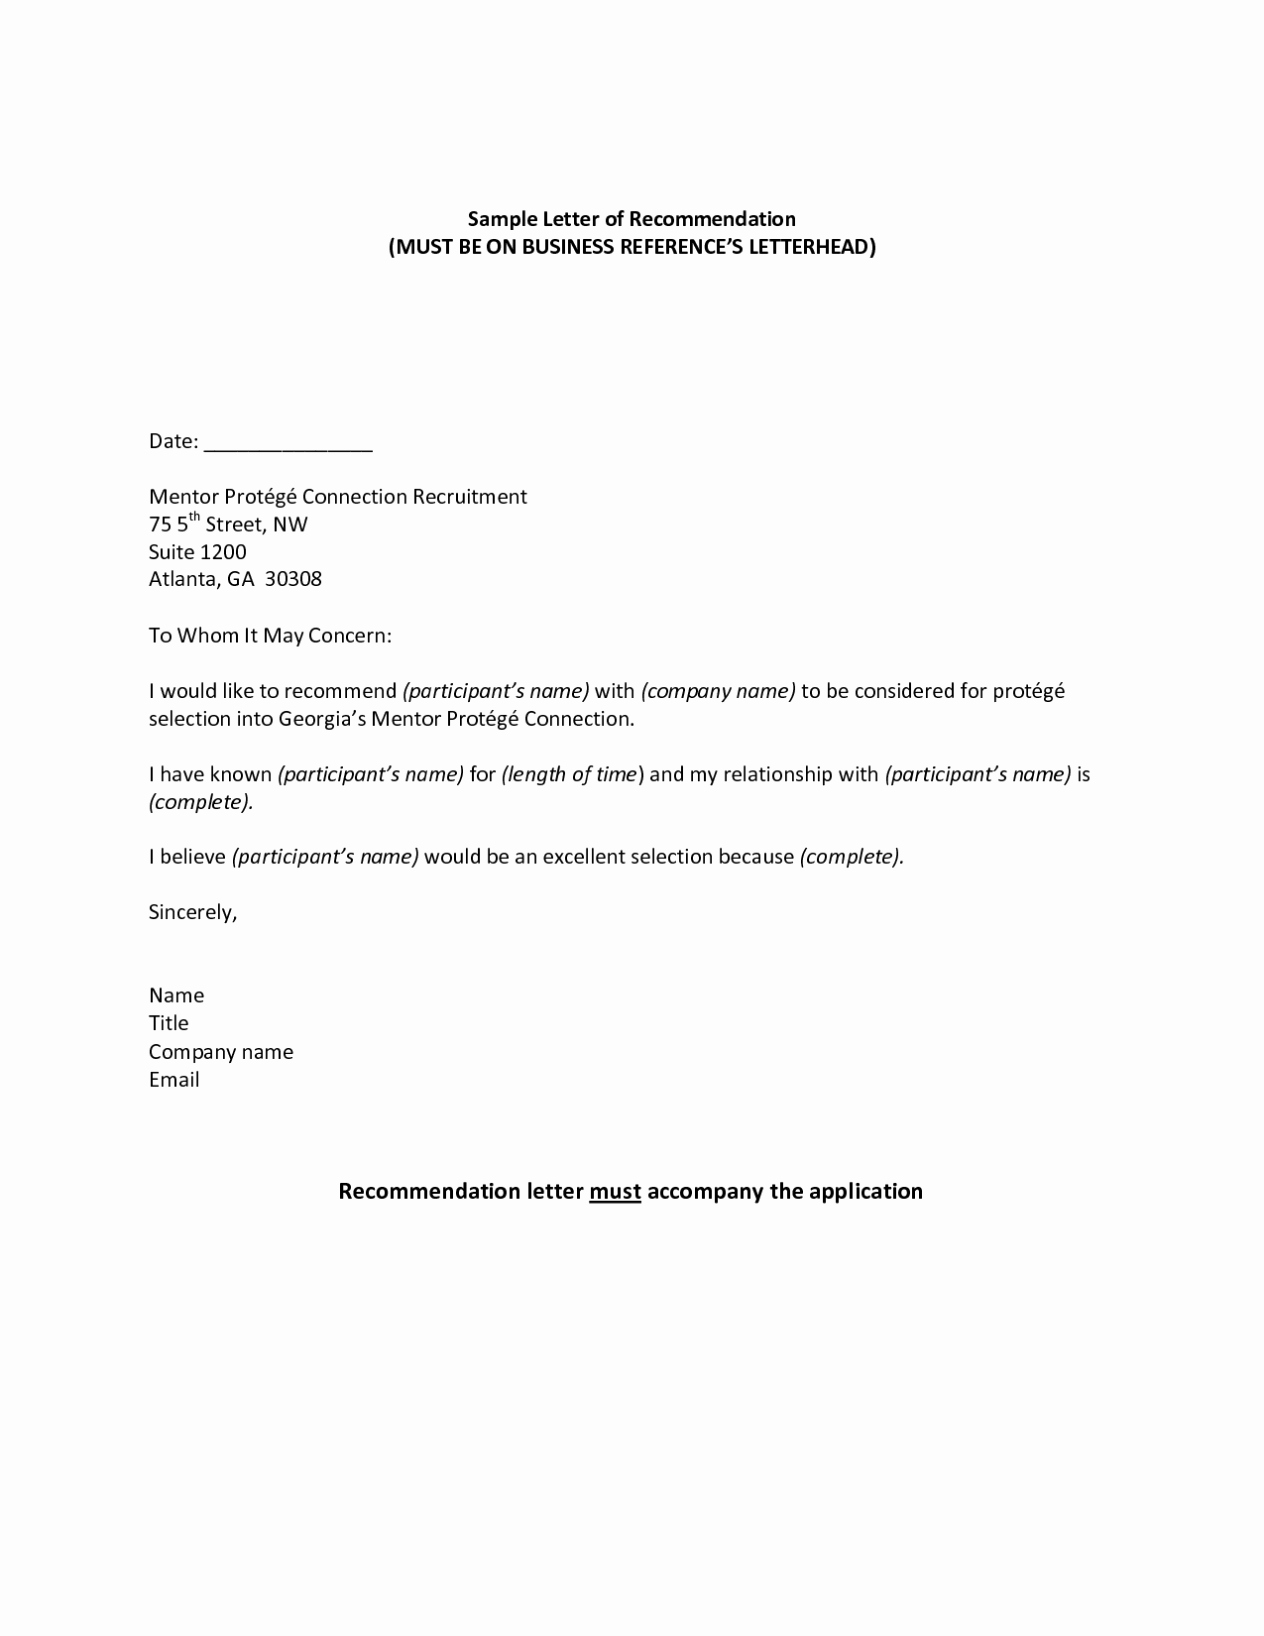 Formal Letter Of Recommendation Template Luxury Reference Letter format Template Sample